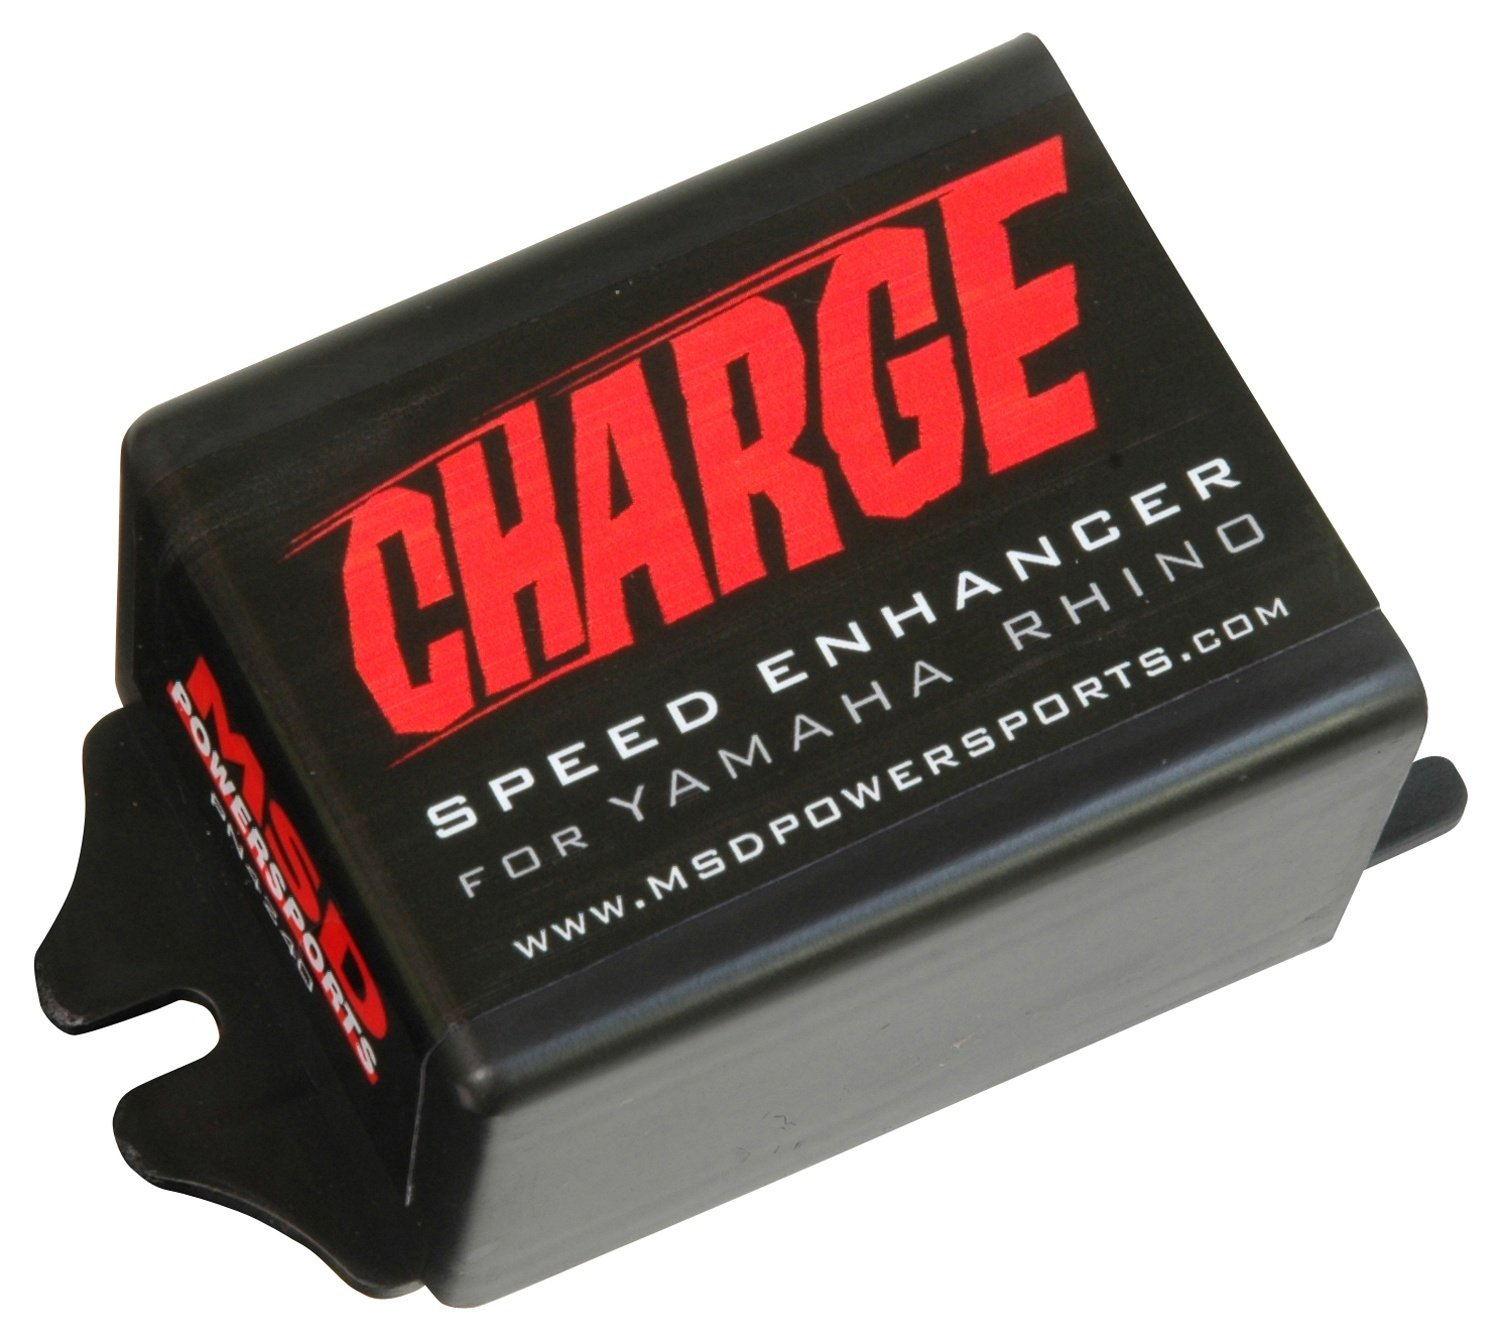 MSD 4240 Charge Speed Enhancer by MSD